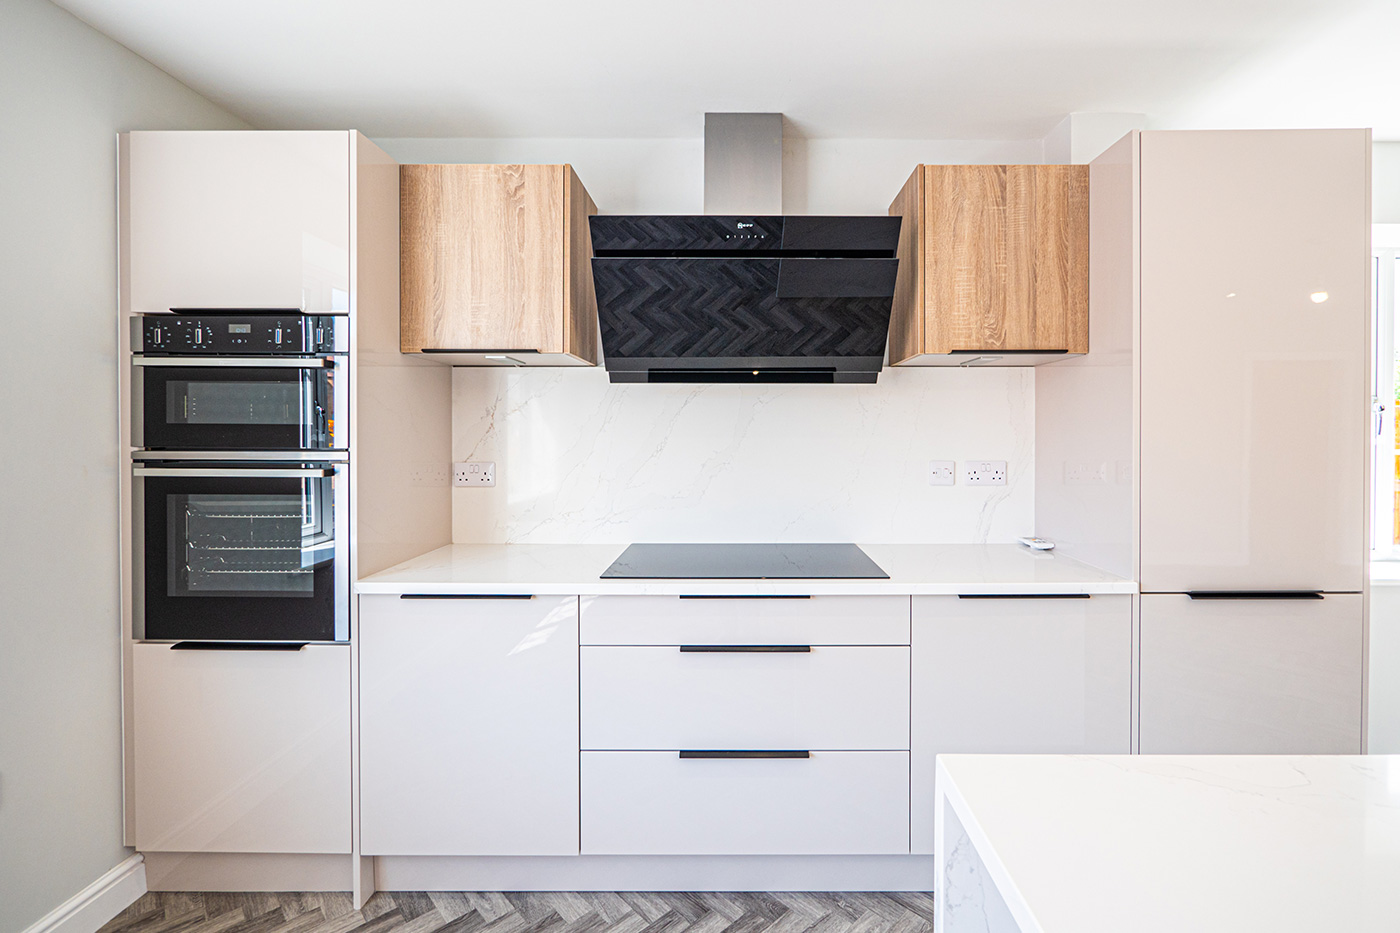 White kitchen units with integrated oven